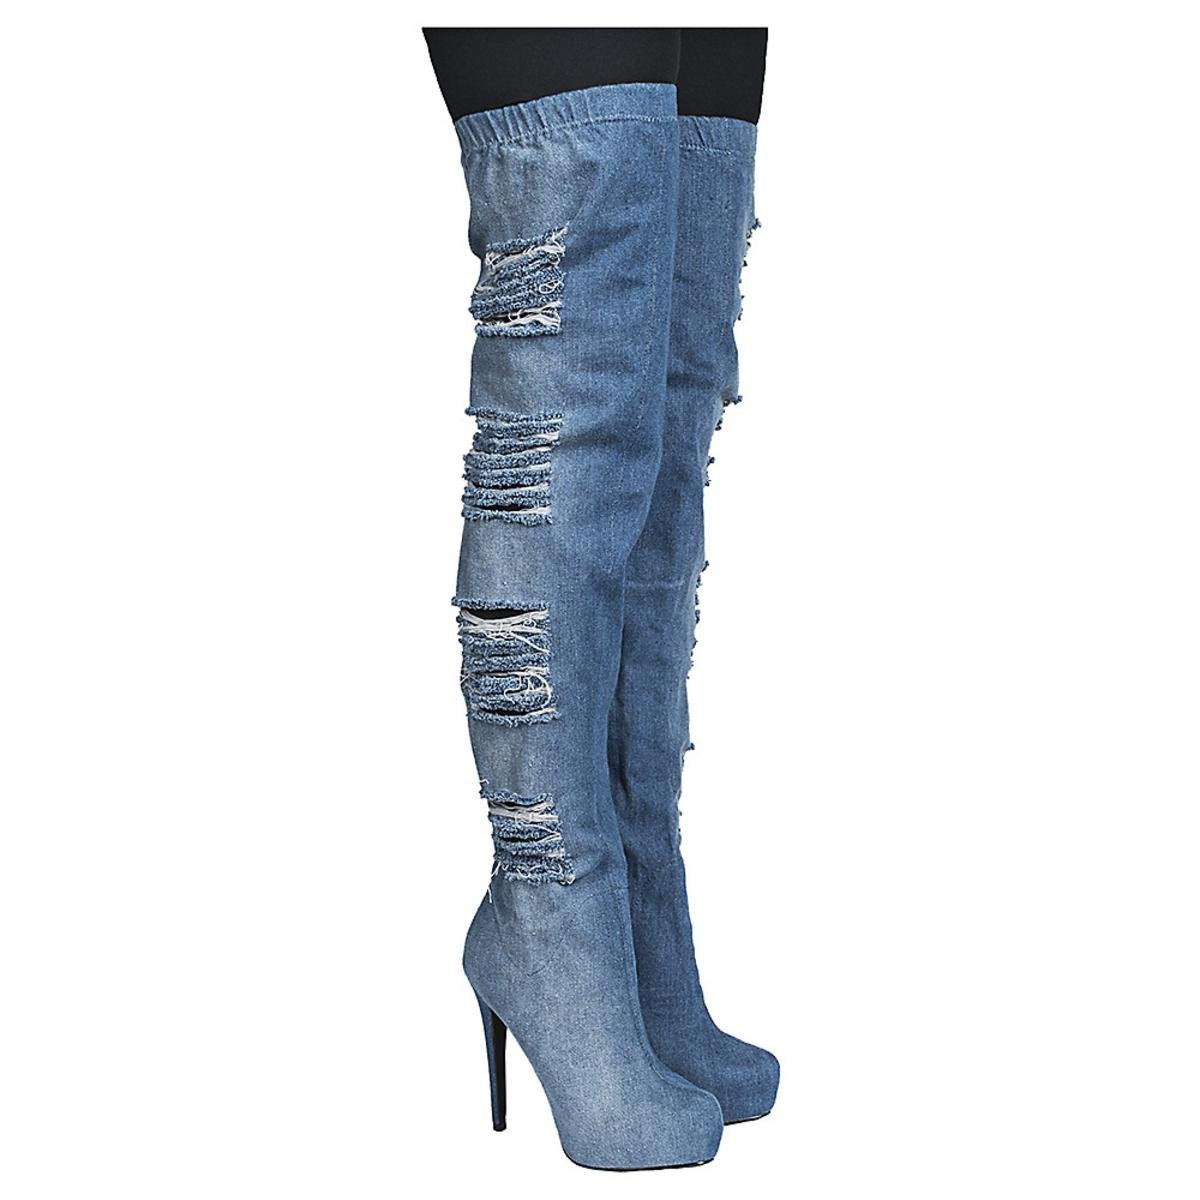 Women's Thigh-High High Heel Boot Malina